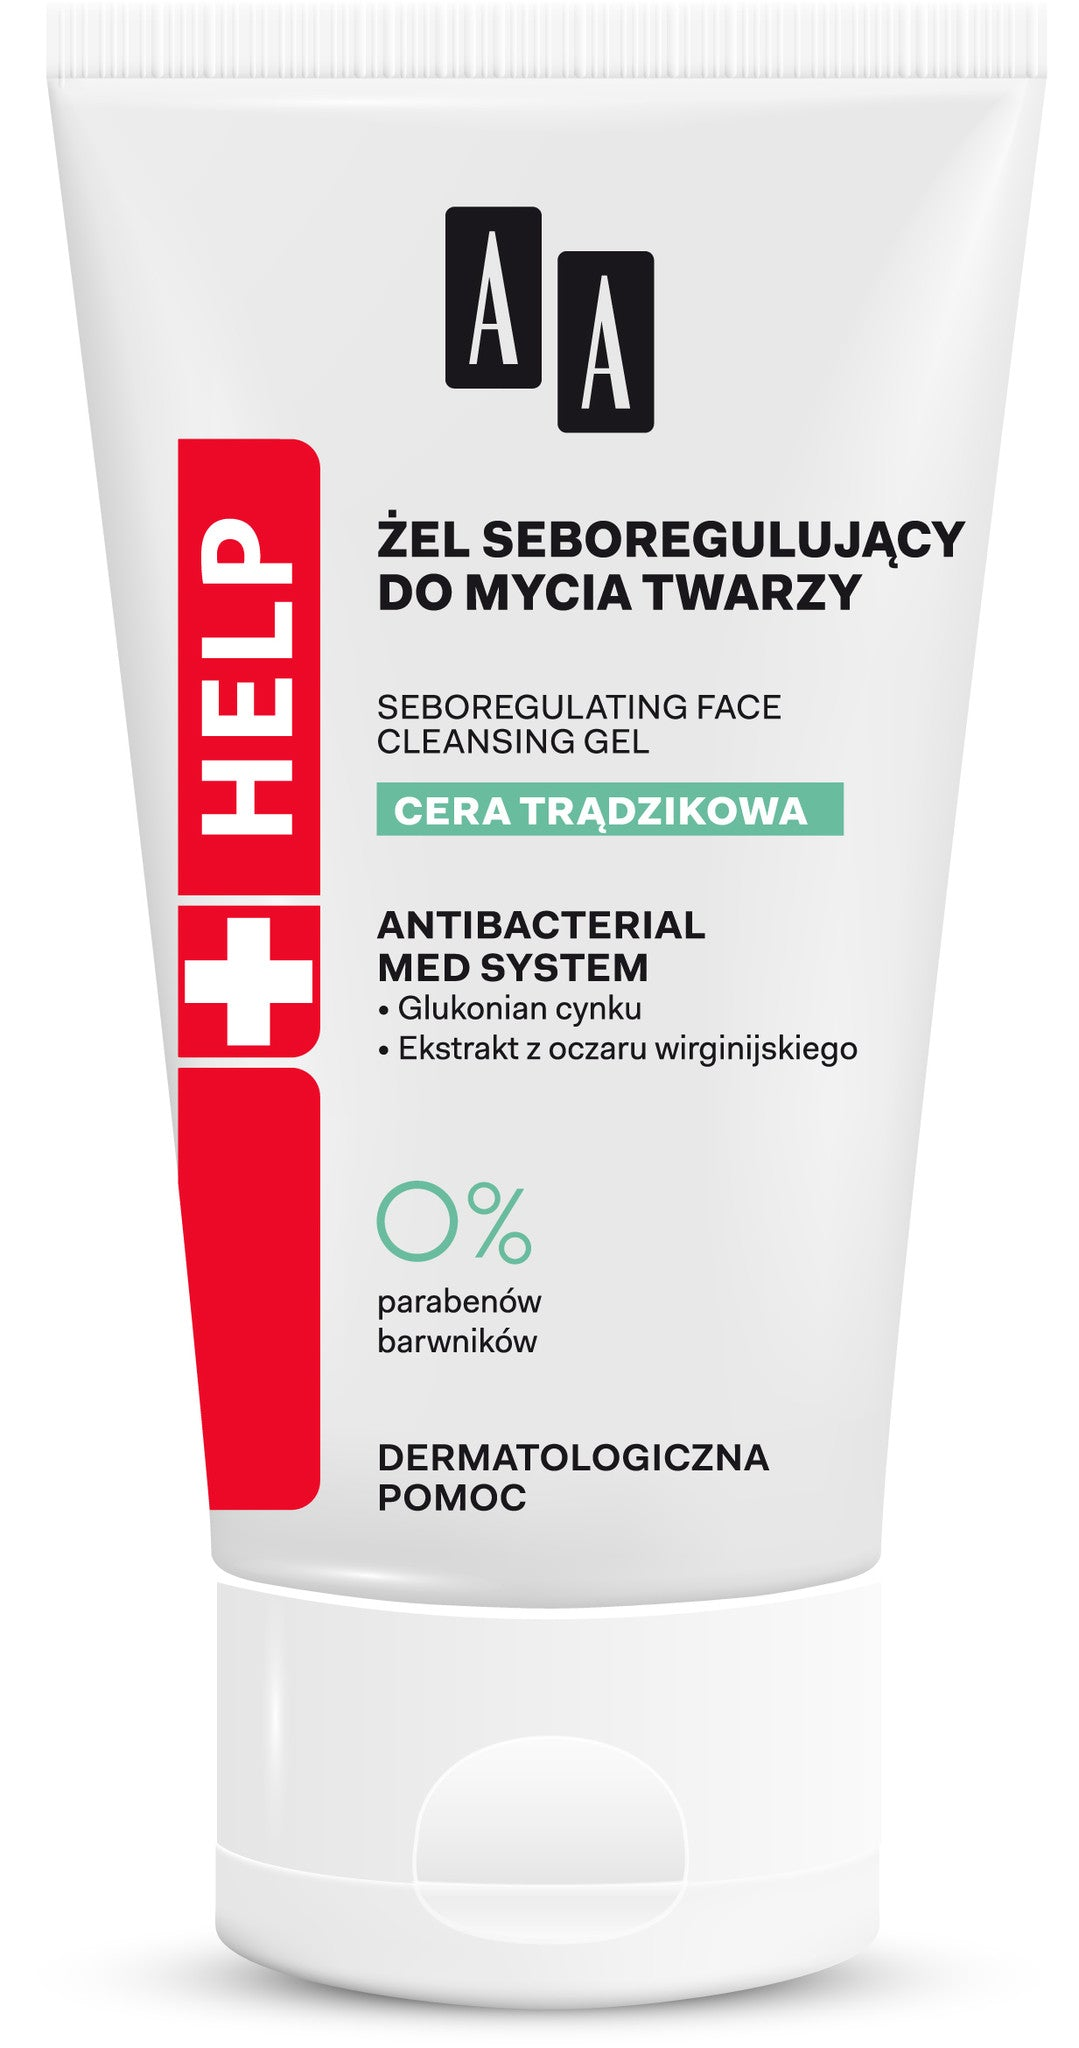 AA HELP Acne SeboRegulating Face Cleansing Gel 150 ml